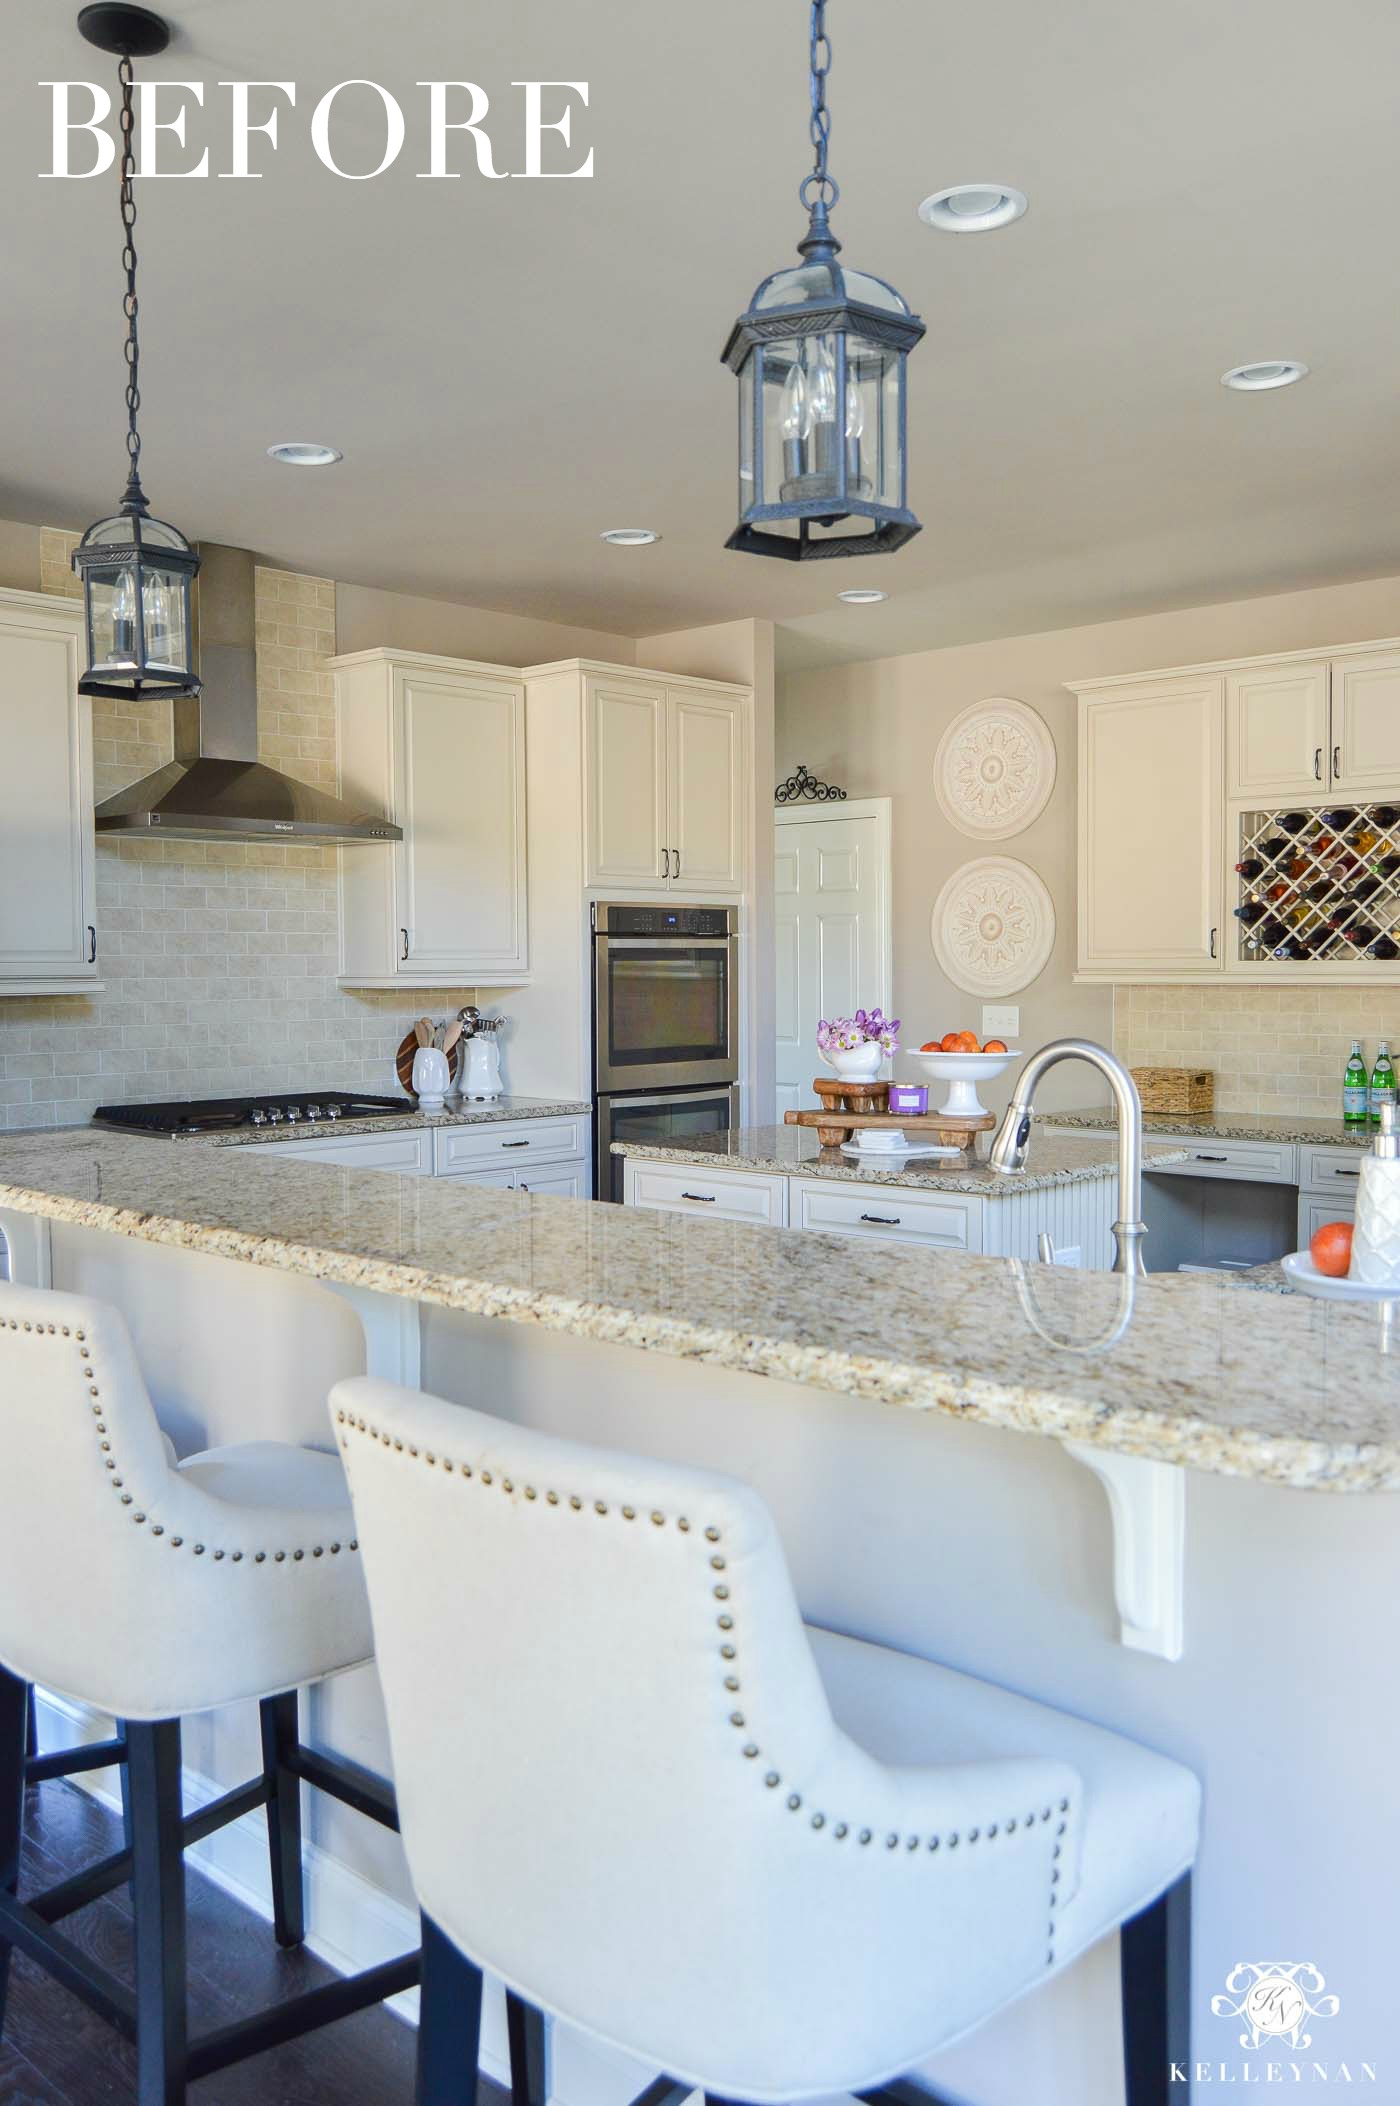 Kitchen Lighting Improving Builder Grade Light Fixtures To Affordable Transitional